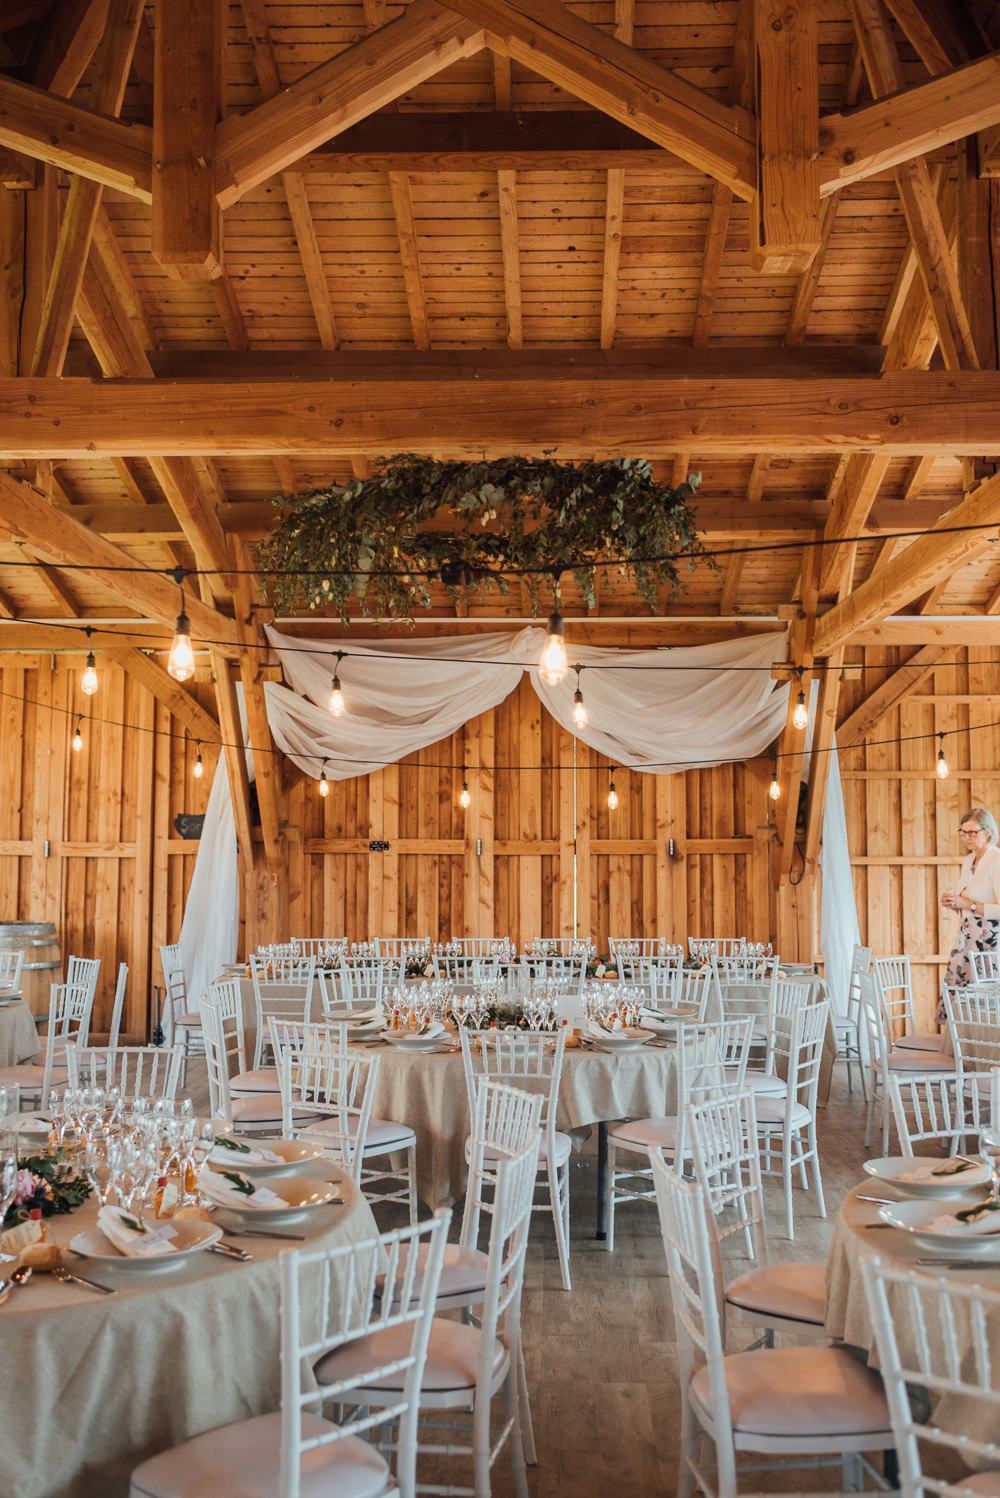 Barn Festoon Lights Drapes Decor Decoration France Destination Wedding The Shannons Photography